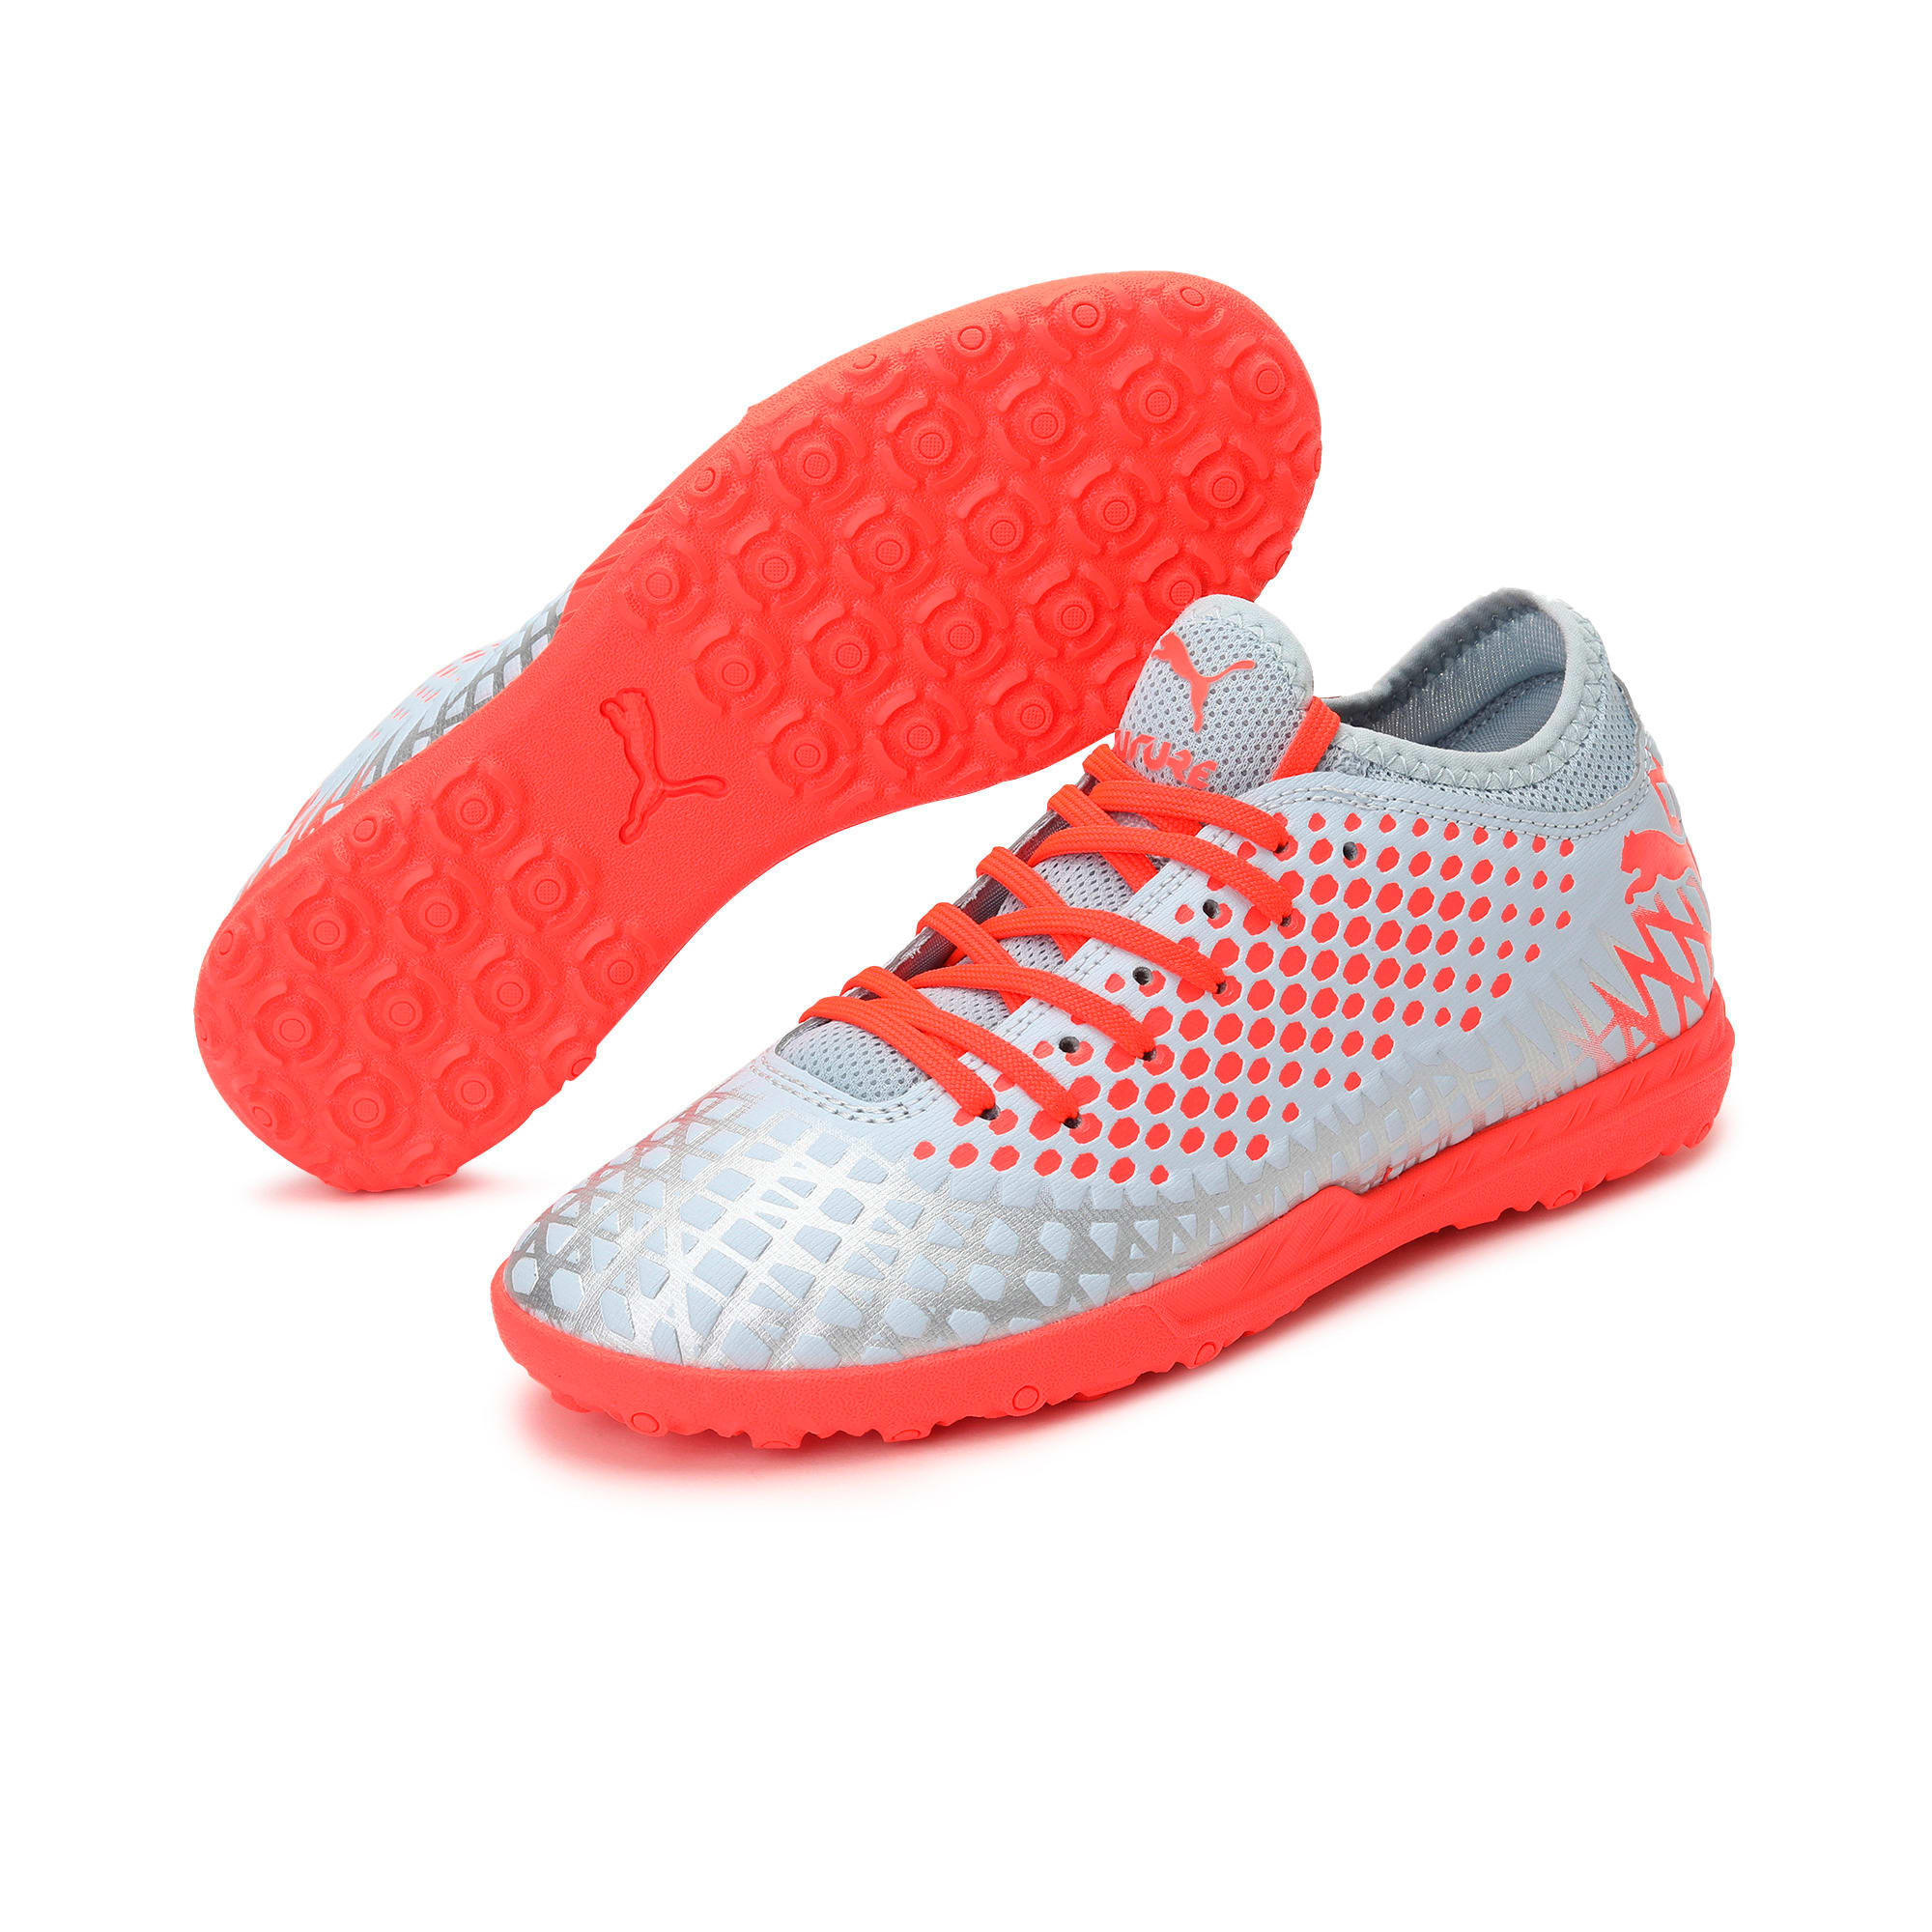 Thumbnail 2 of FUTURE 4.4 TT Youth Football Boots, Glacial Blue-Nrgy Red, medium-IND